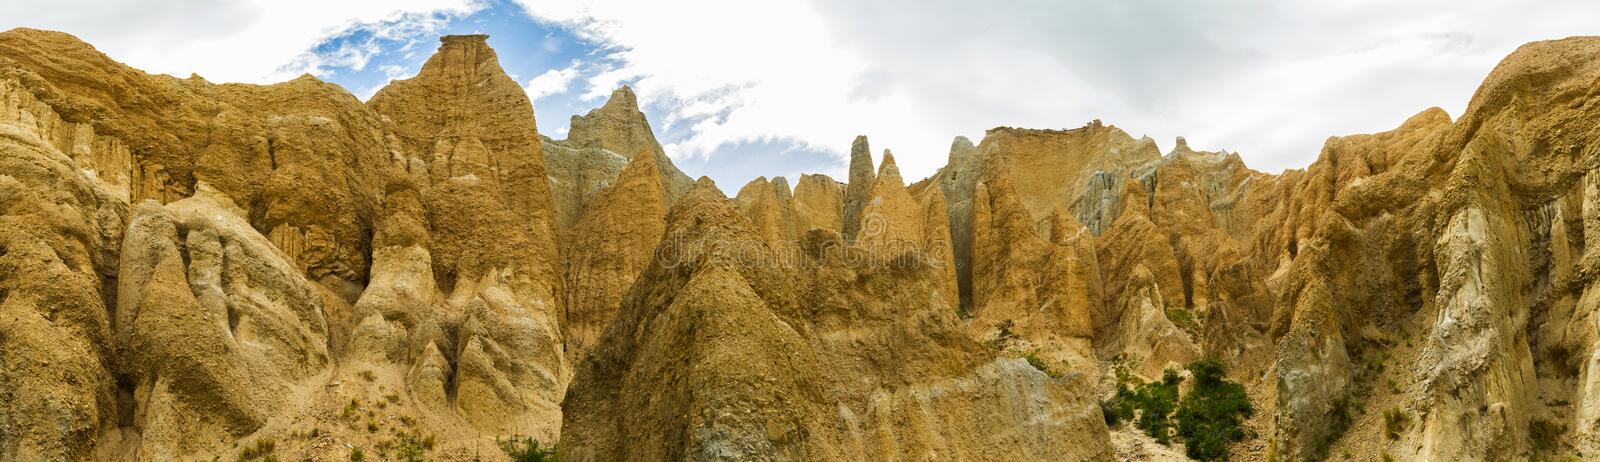 Clay Cliffs nahe Omarama lizenzfreies stockfoto